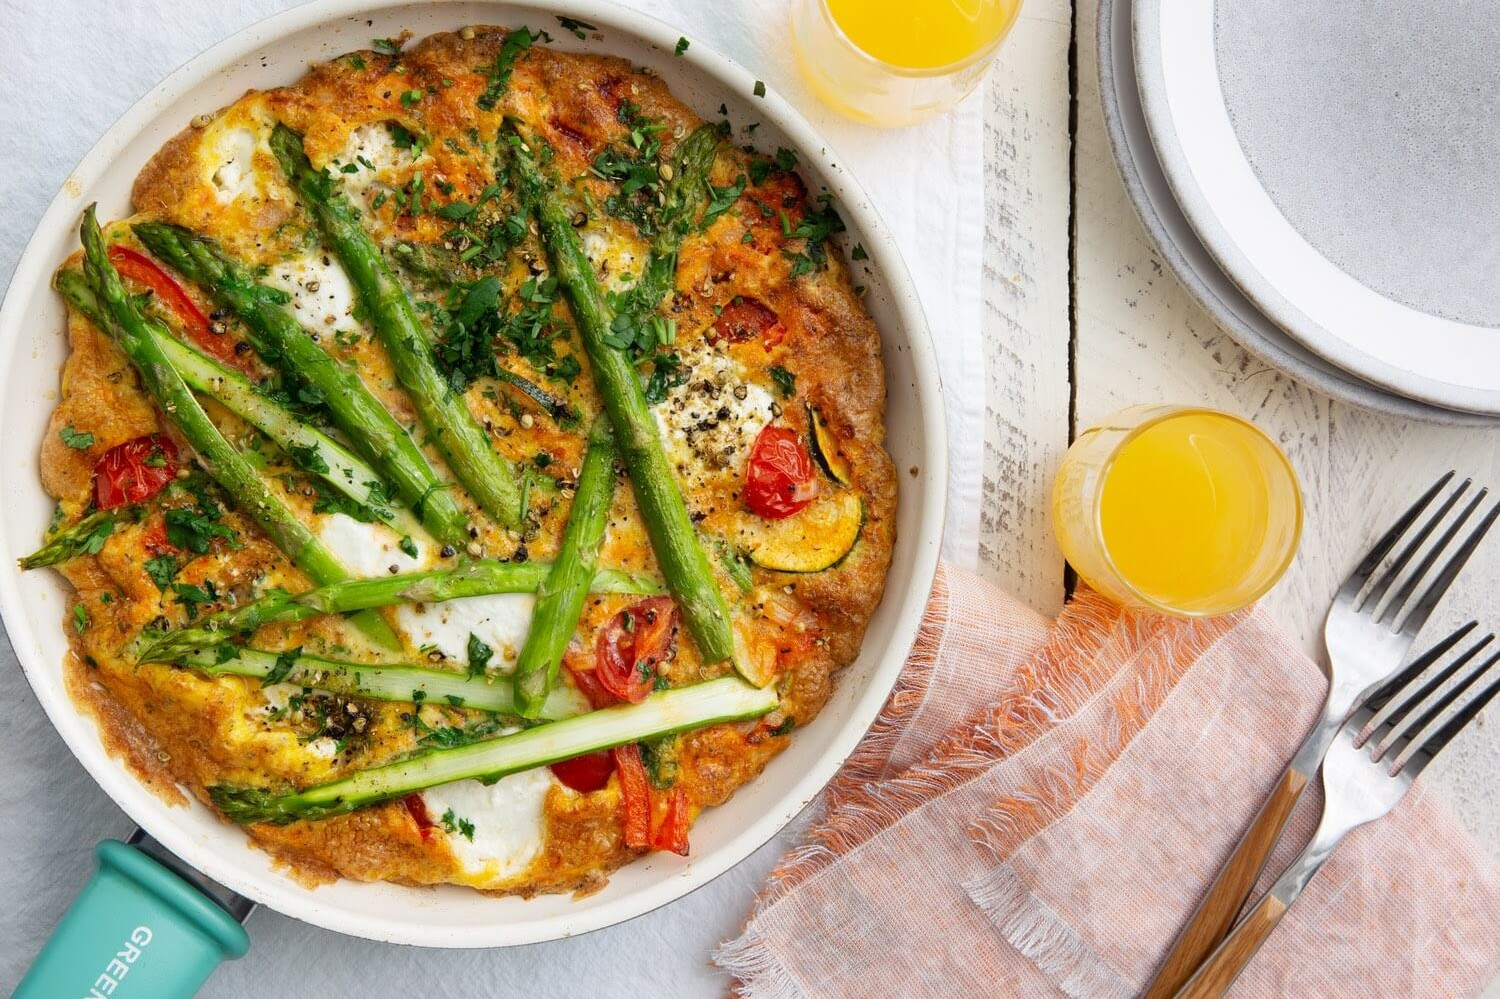 This Italian frittata is filled with tomatoes, asparagus, capsicum peppers, extra virgin olive oil, and an organic egg filling. | peteandgerrys.com